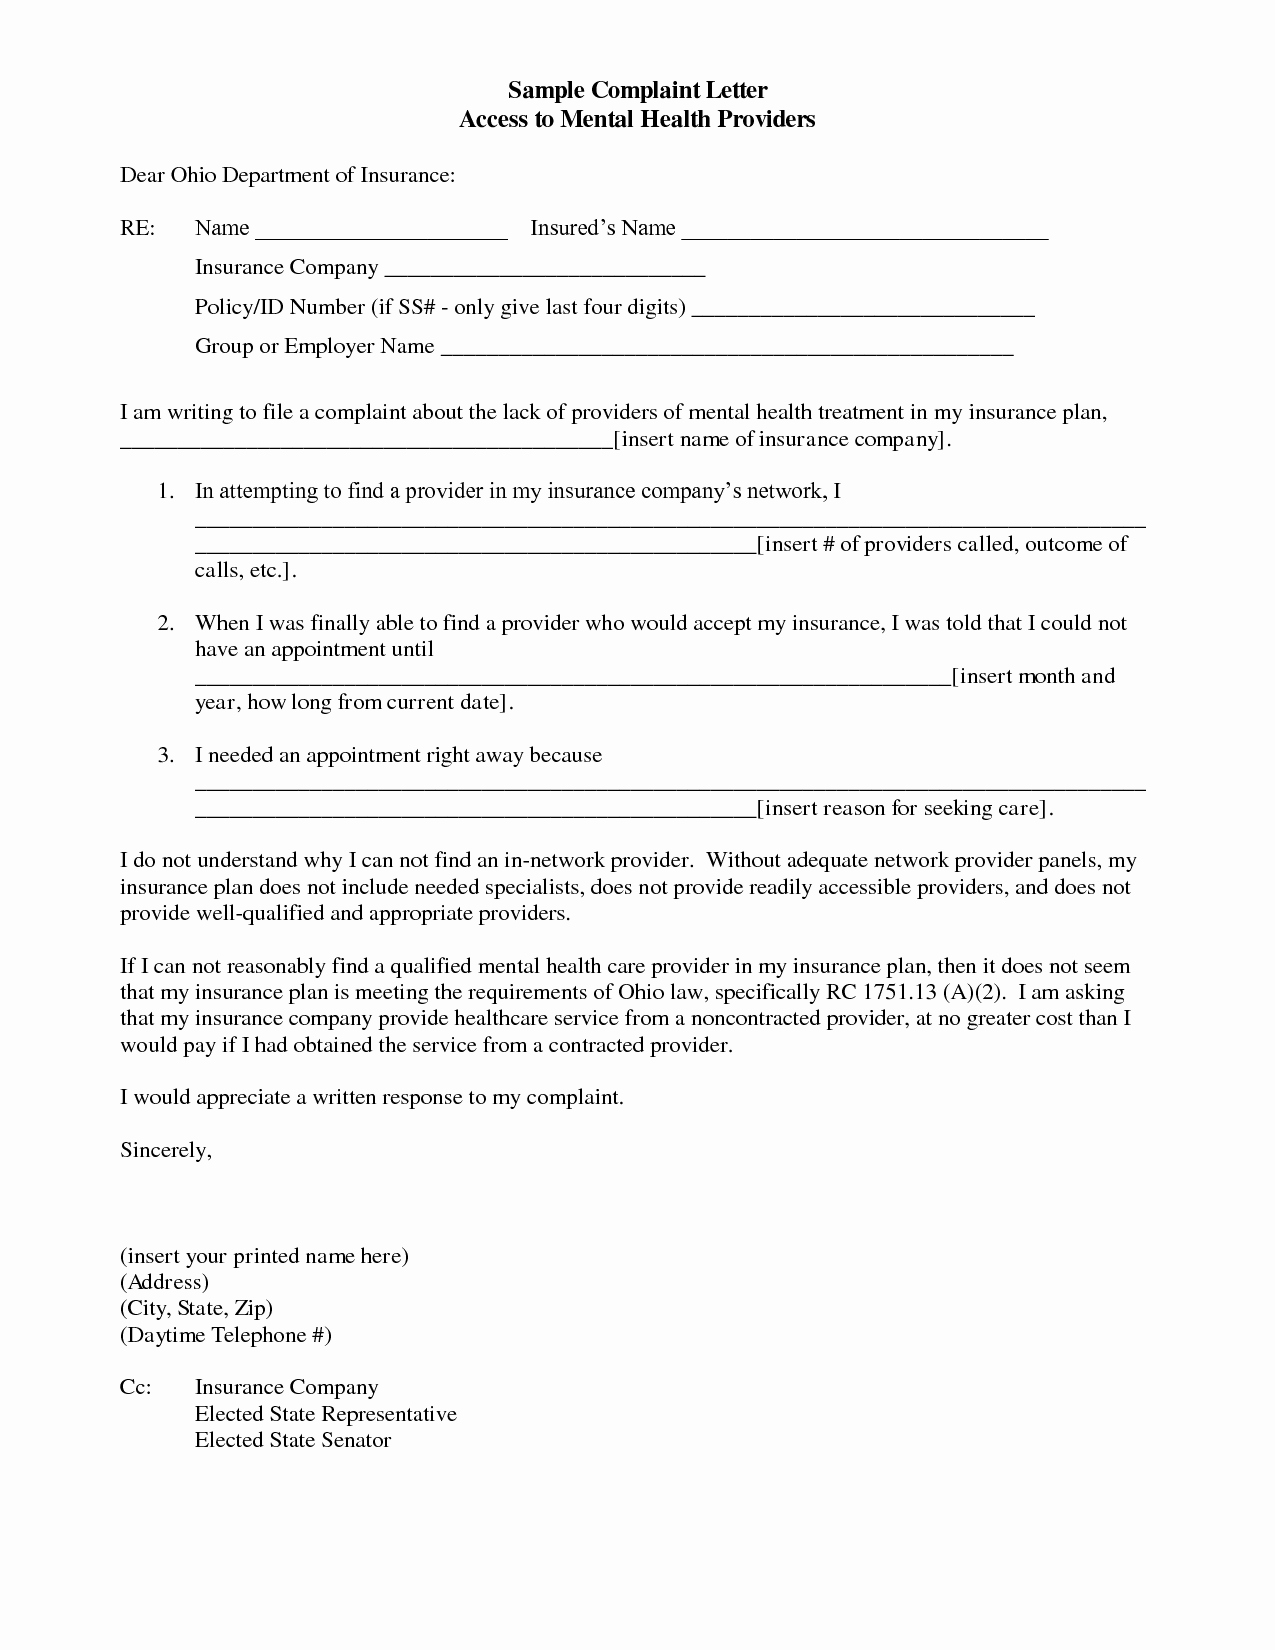 Legal Complaint Template Word Best Of Legal Plaint Template Word Free Sublease